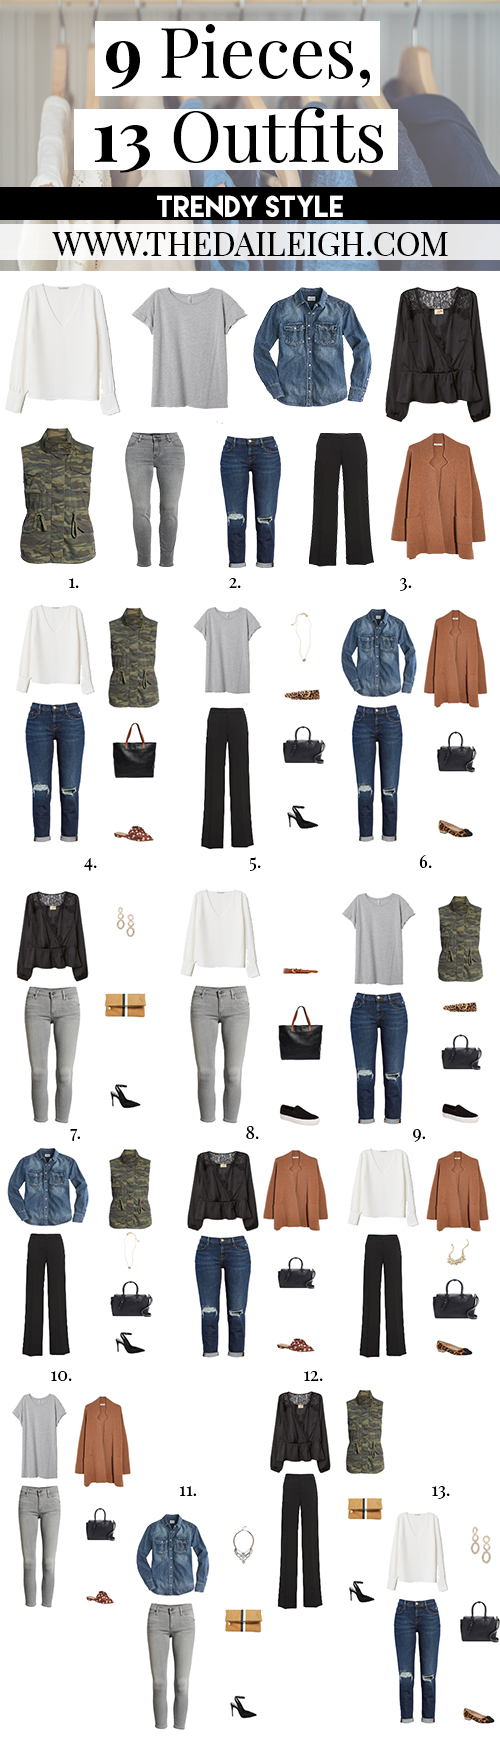 9 Pieces, 13 Trendy Outfits